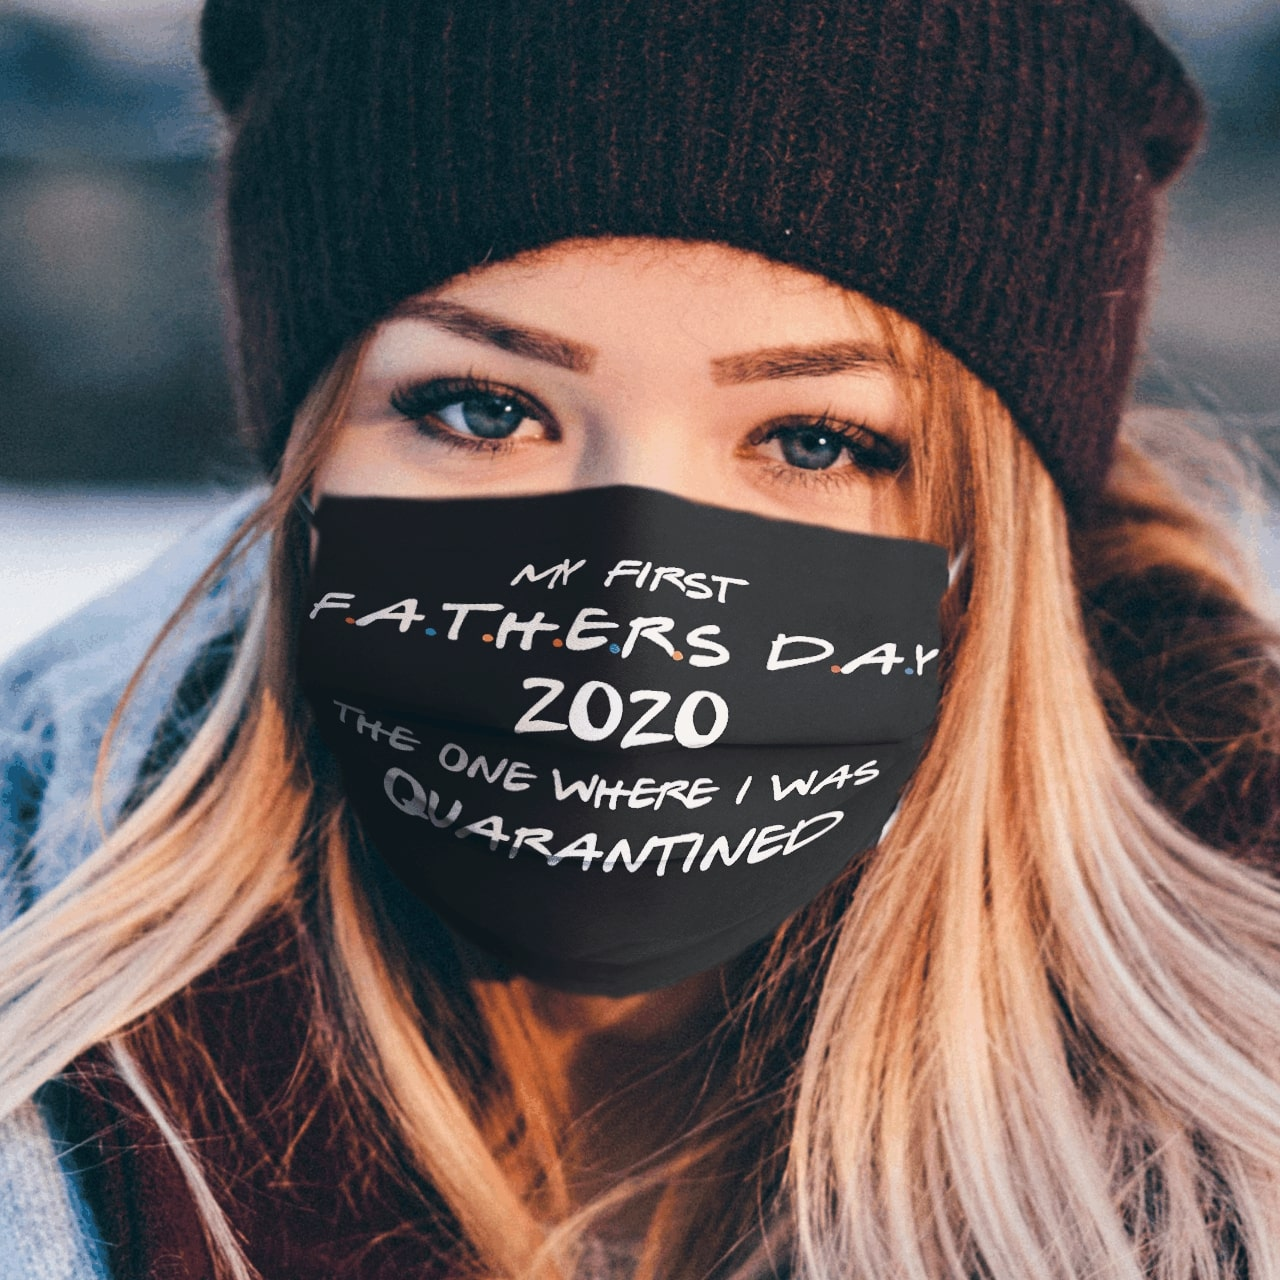 My first father's day 2020 the one i was in quarantined cotton face mask 4